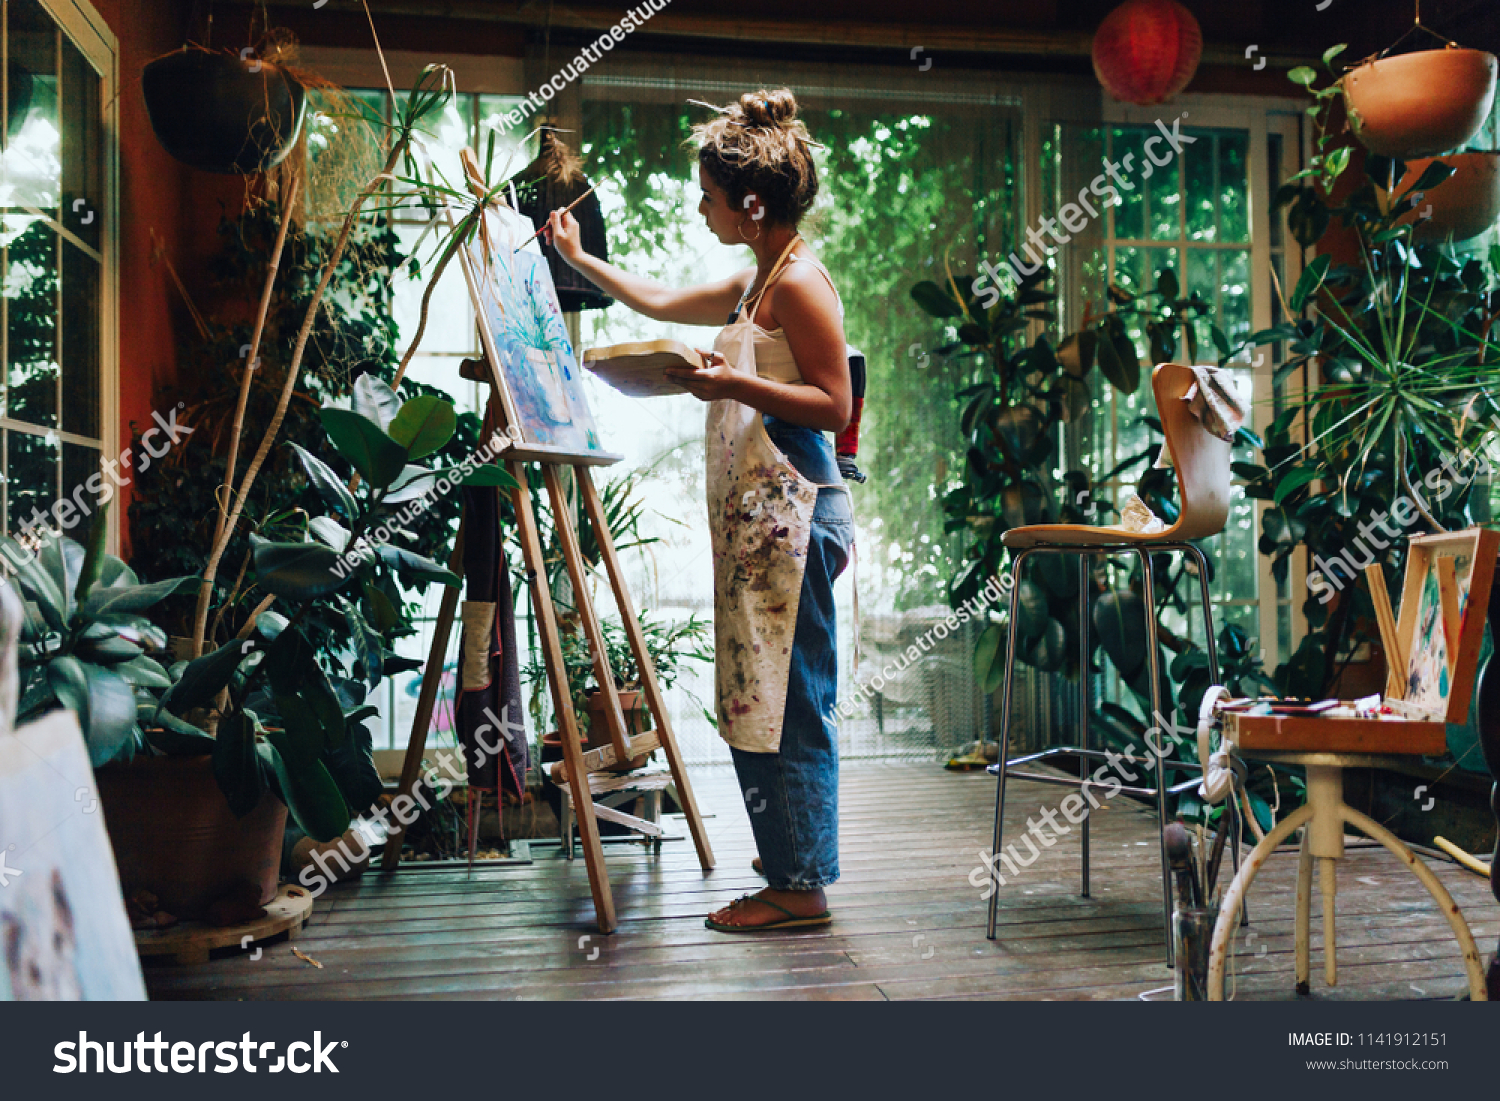 Indoor shot of professional female artist painting on canvas in studio with plants. #1141912151